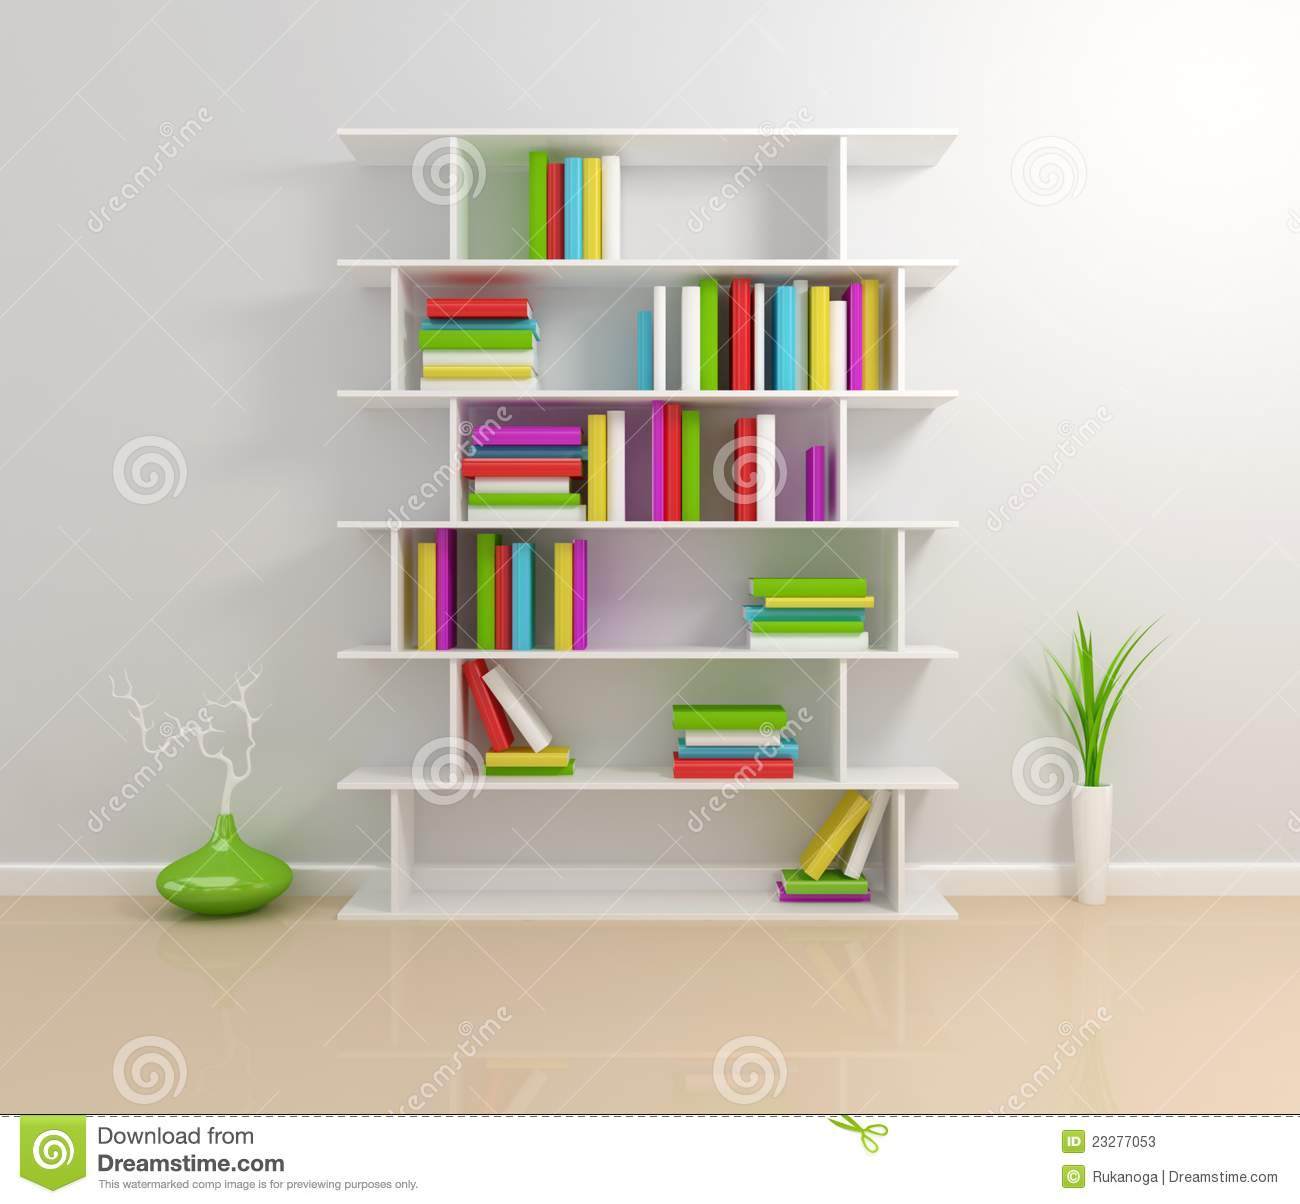 White Bookshelf With A Colorful Books. Stock Photos - Image: 23277053